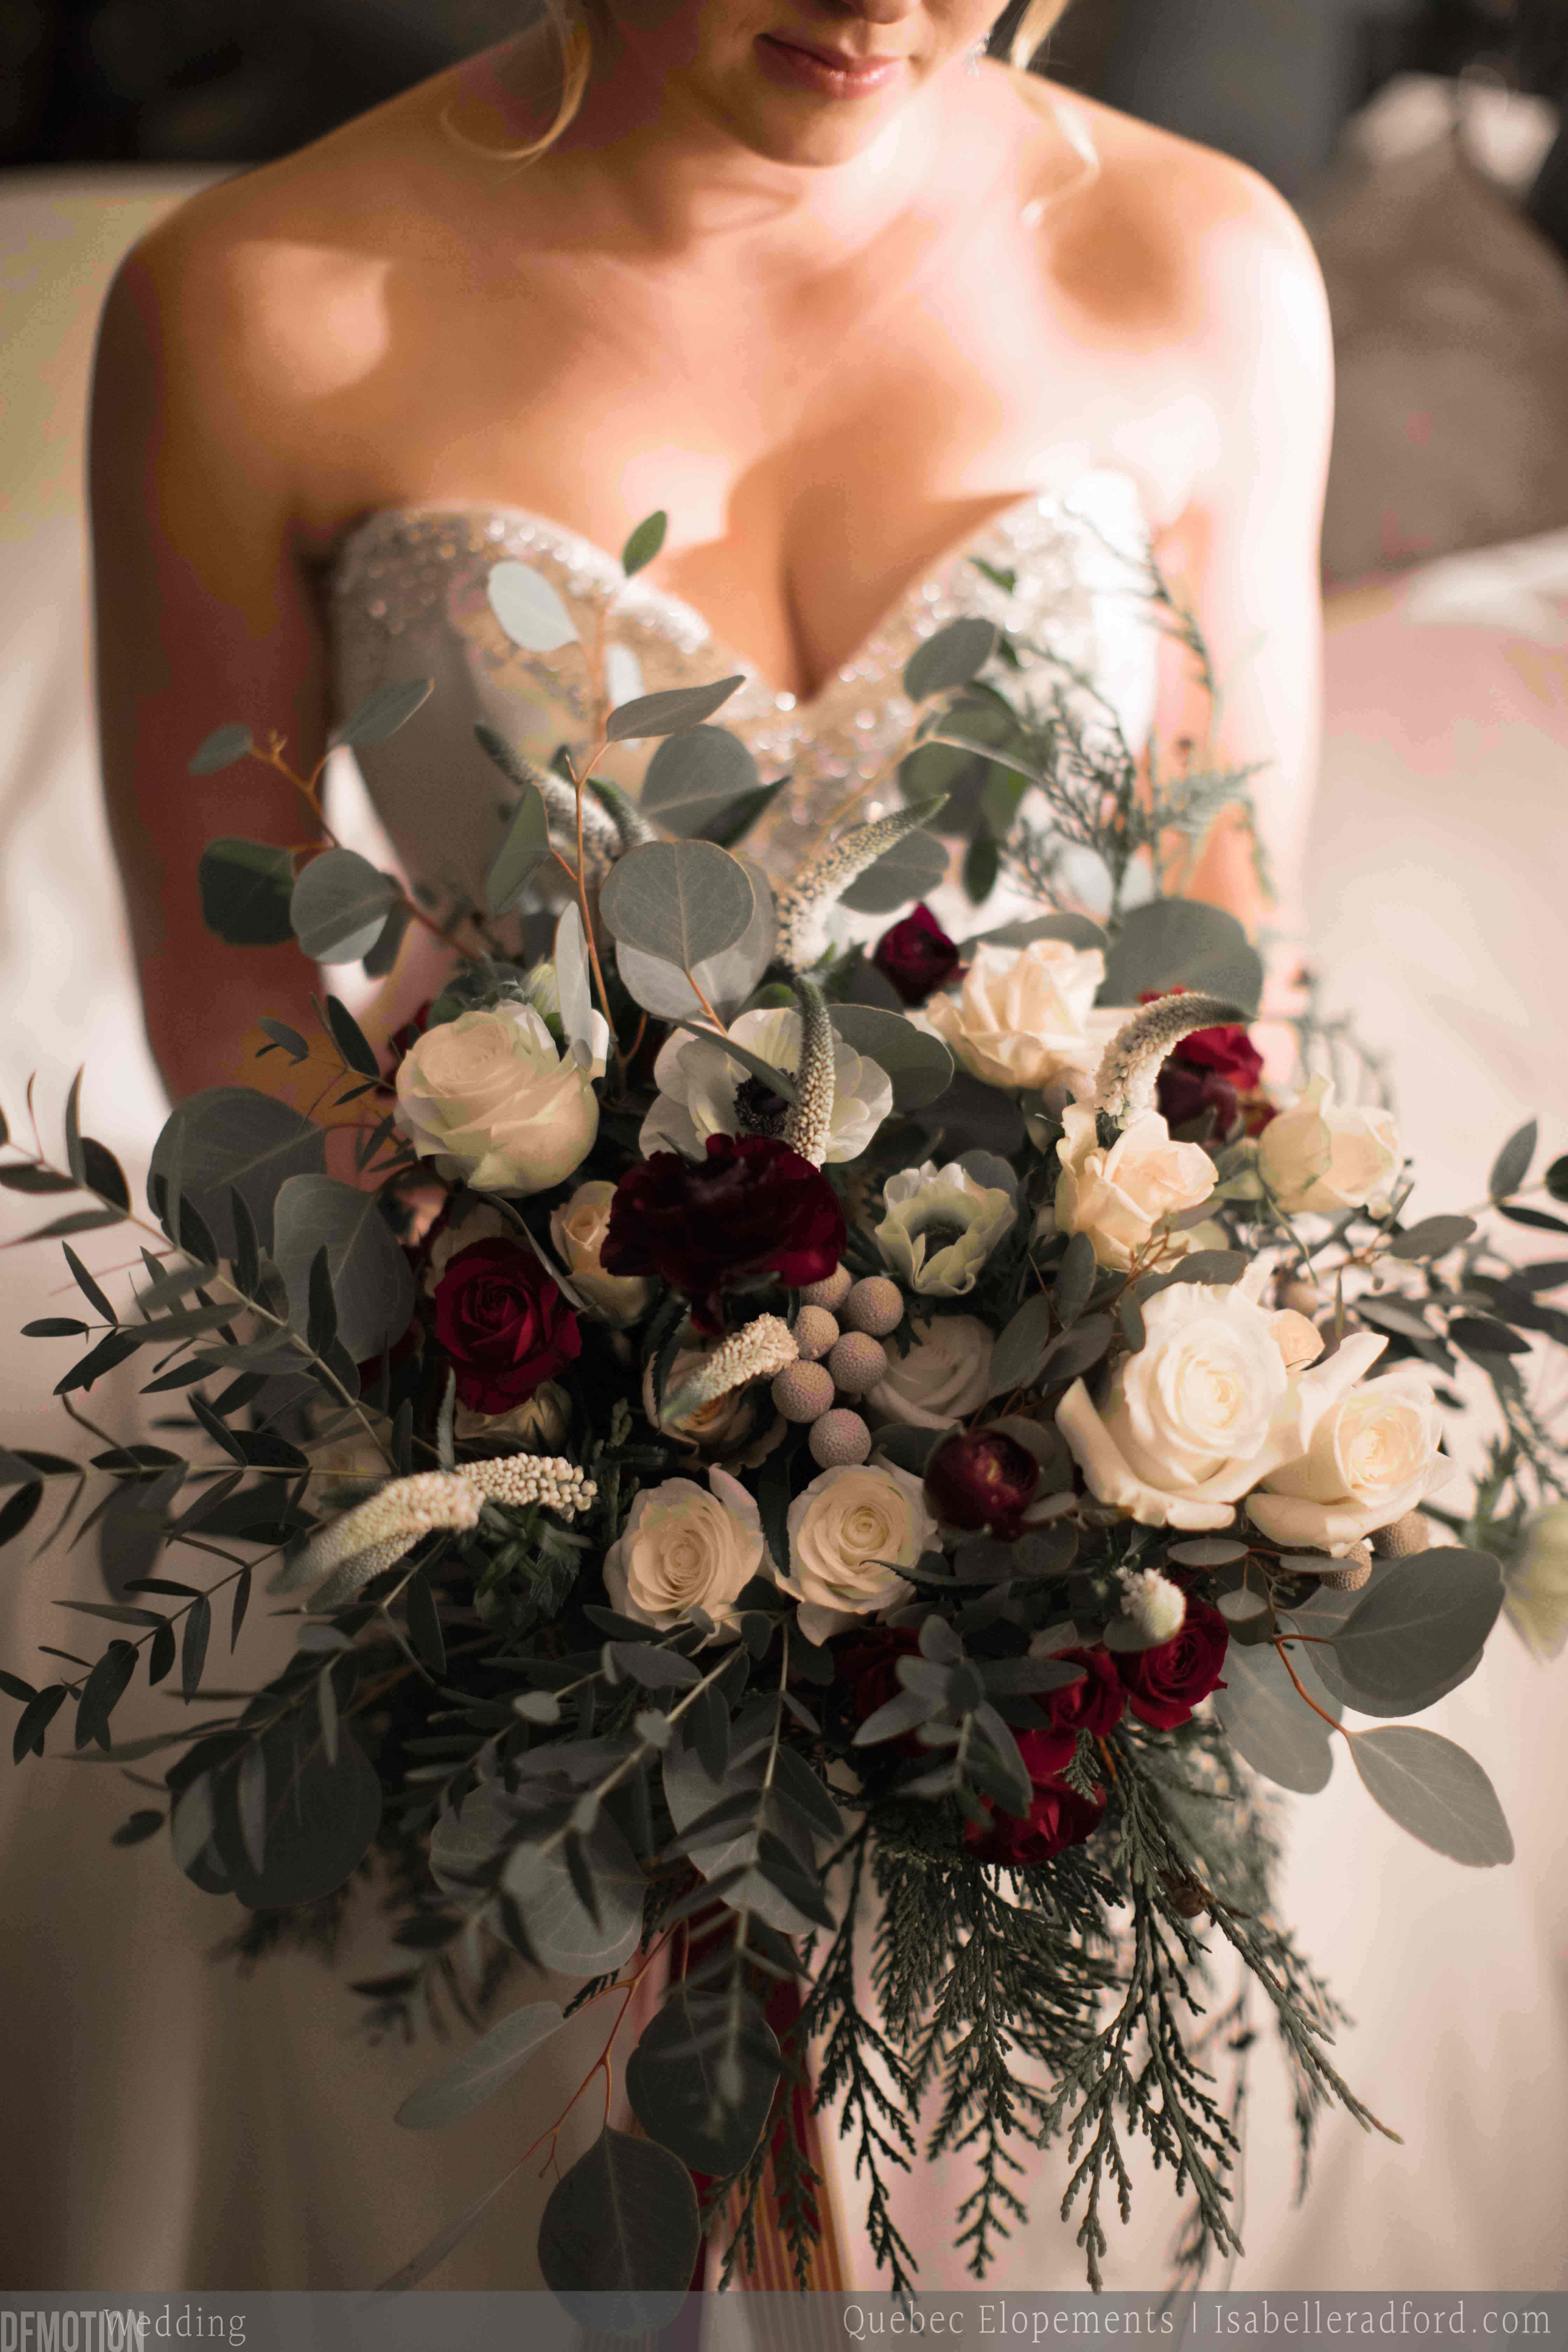 mariages intimes quebec elopements the january second bouquet a winter bouquet created for. Black Bedroom Furniture Sets. Home Design Ideas